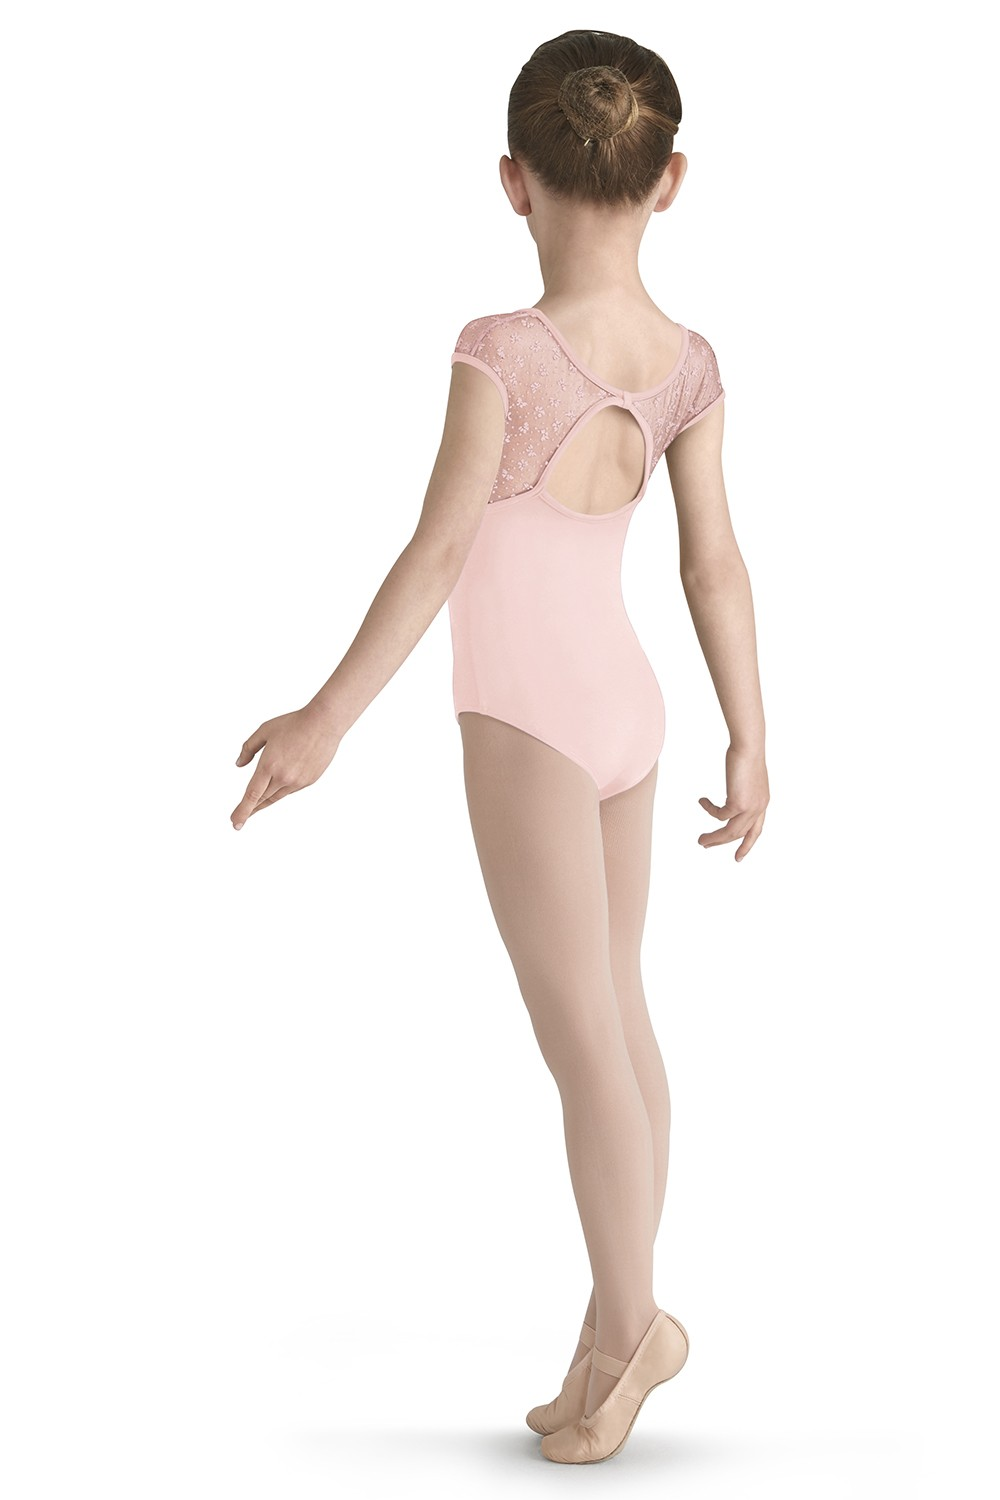 Bow Flock Yoke Leo Children's Dance Leotards